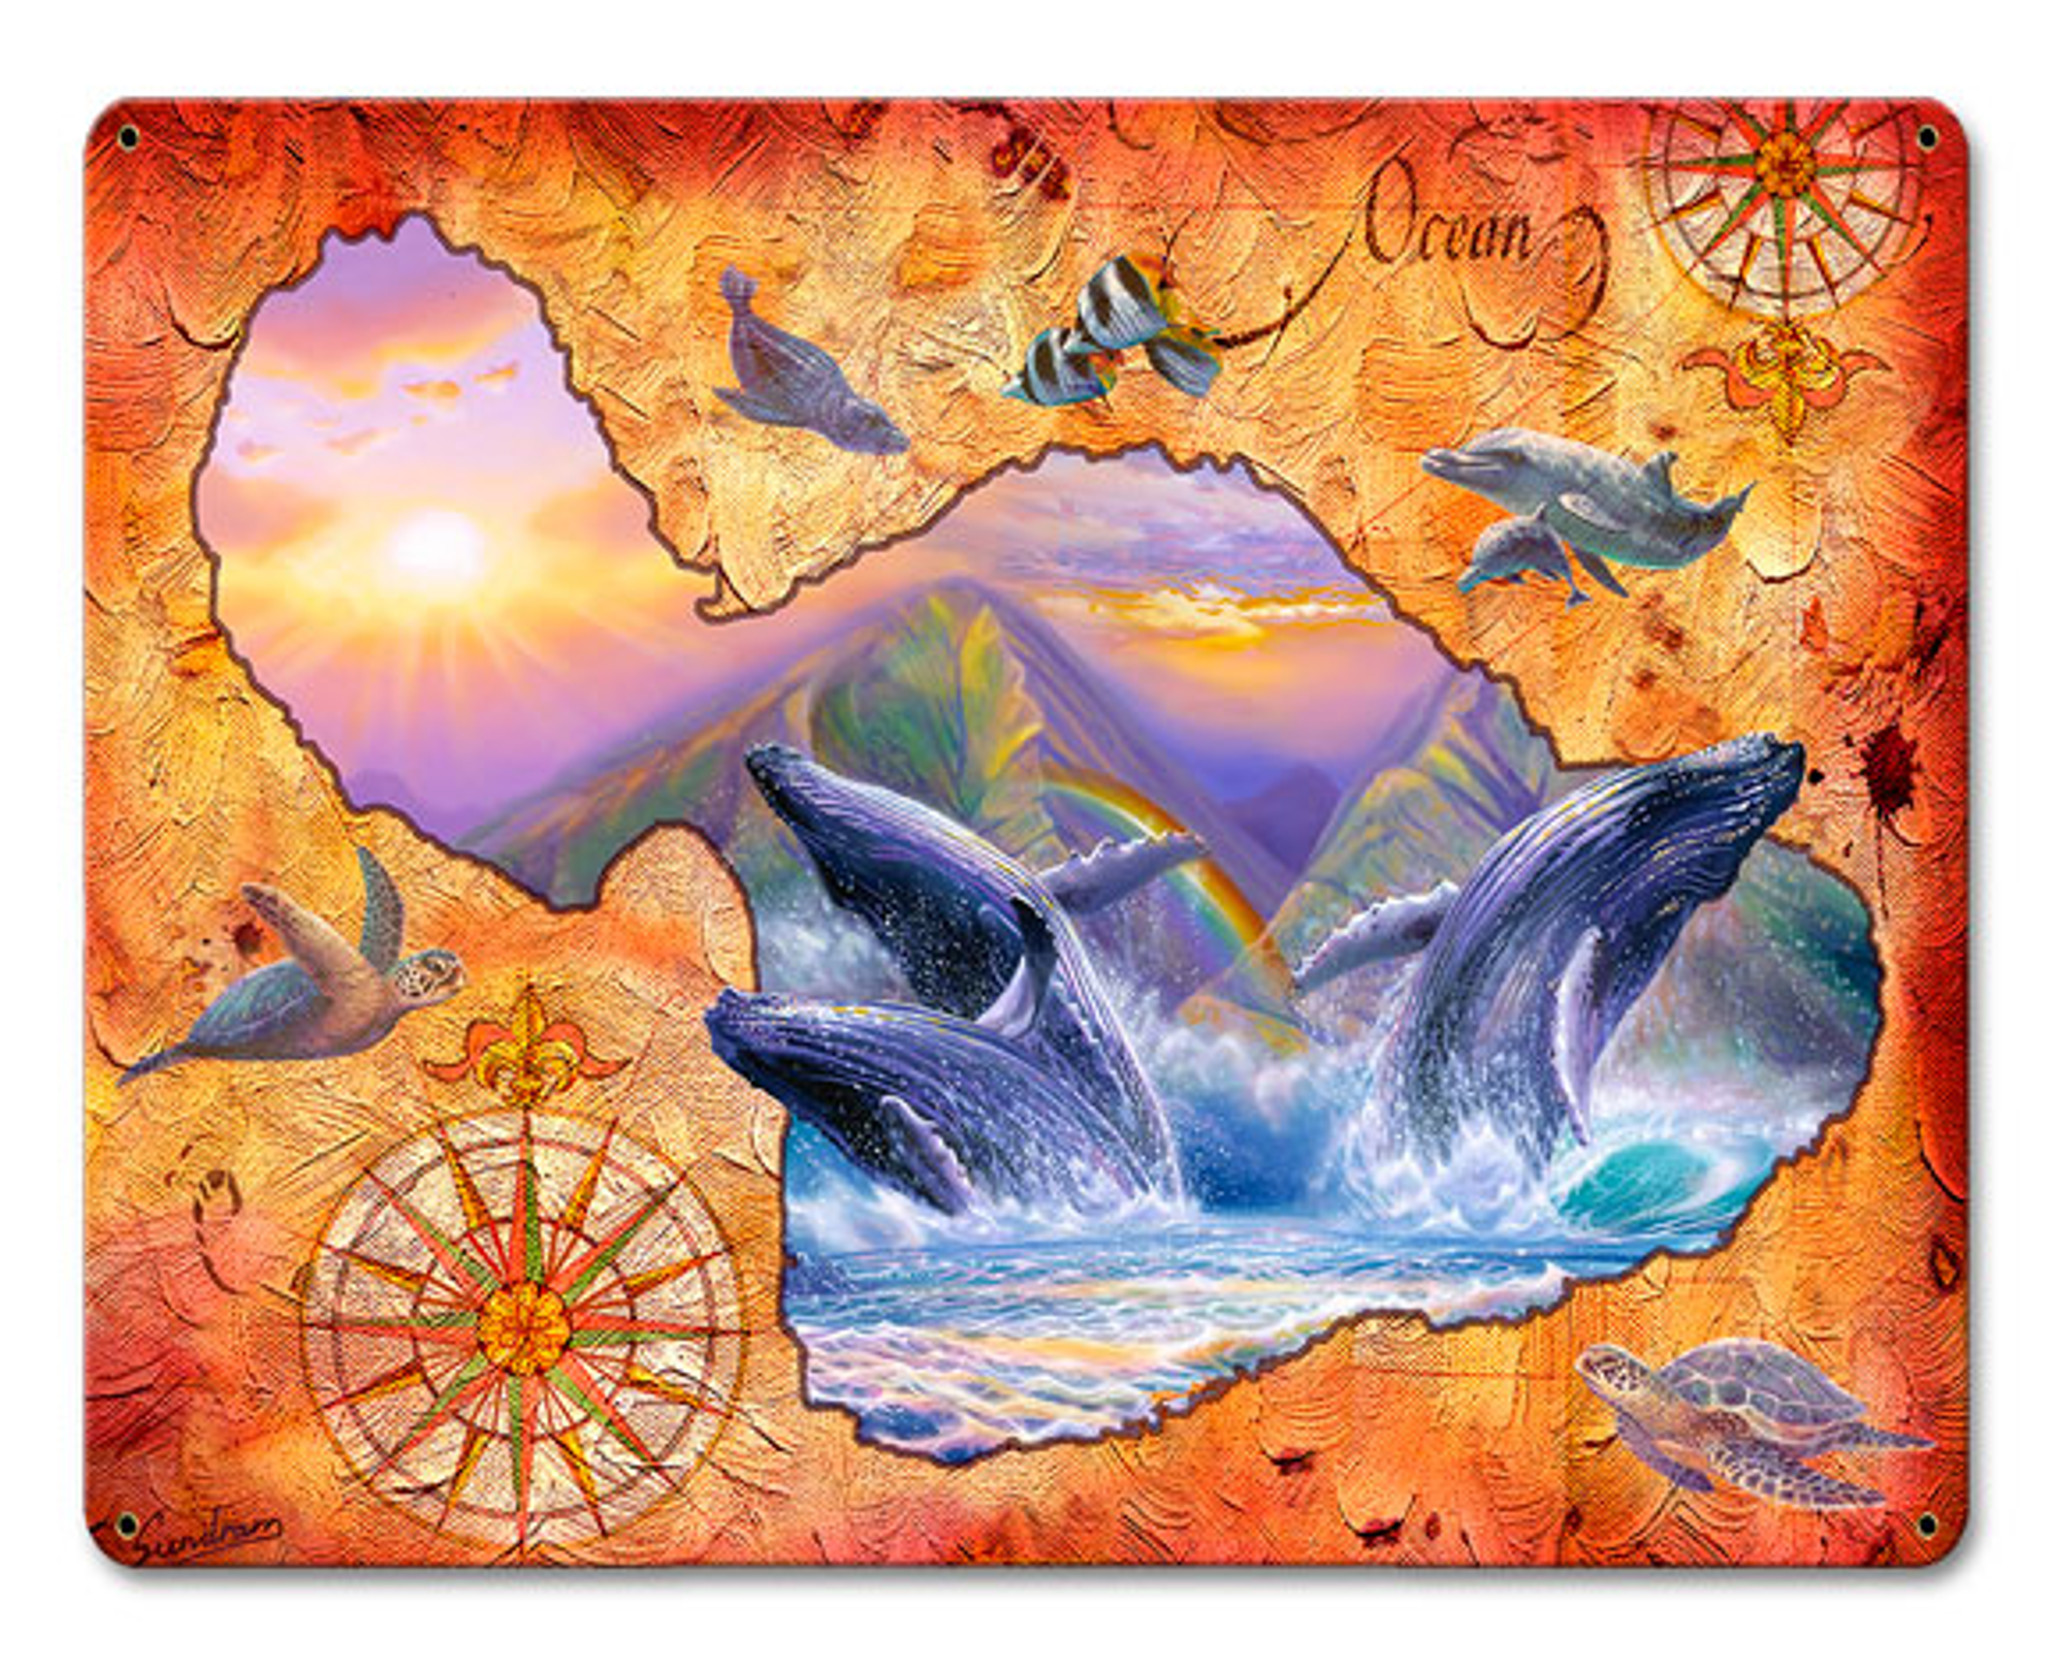 VINTAGE SIGN Whale Play Maui Map 15 x 12